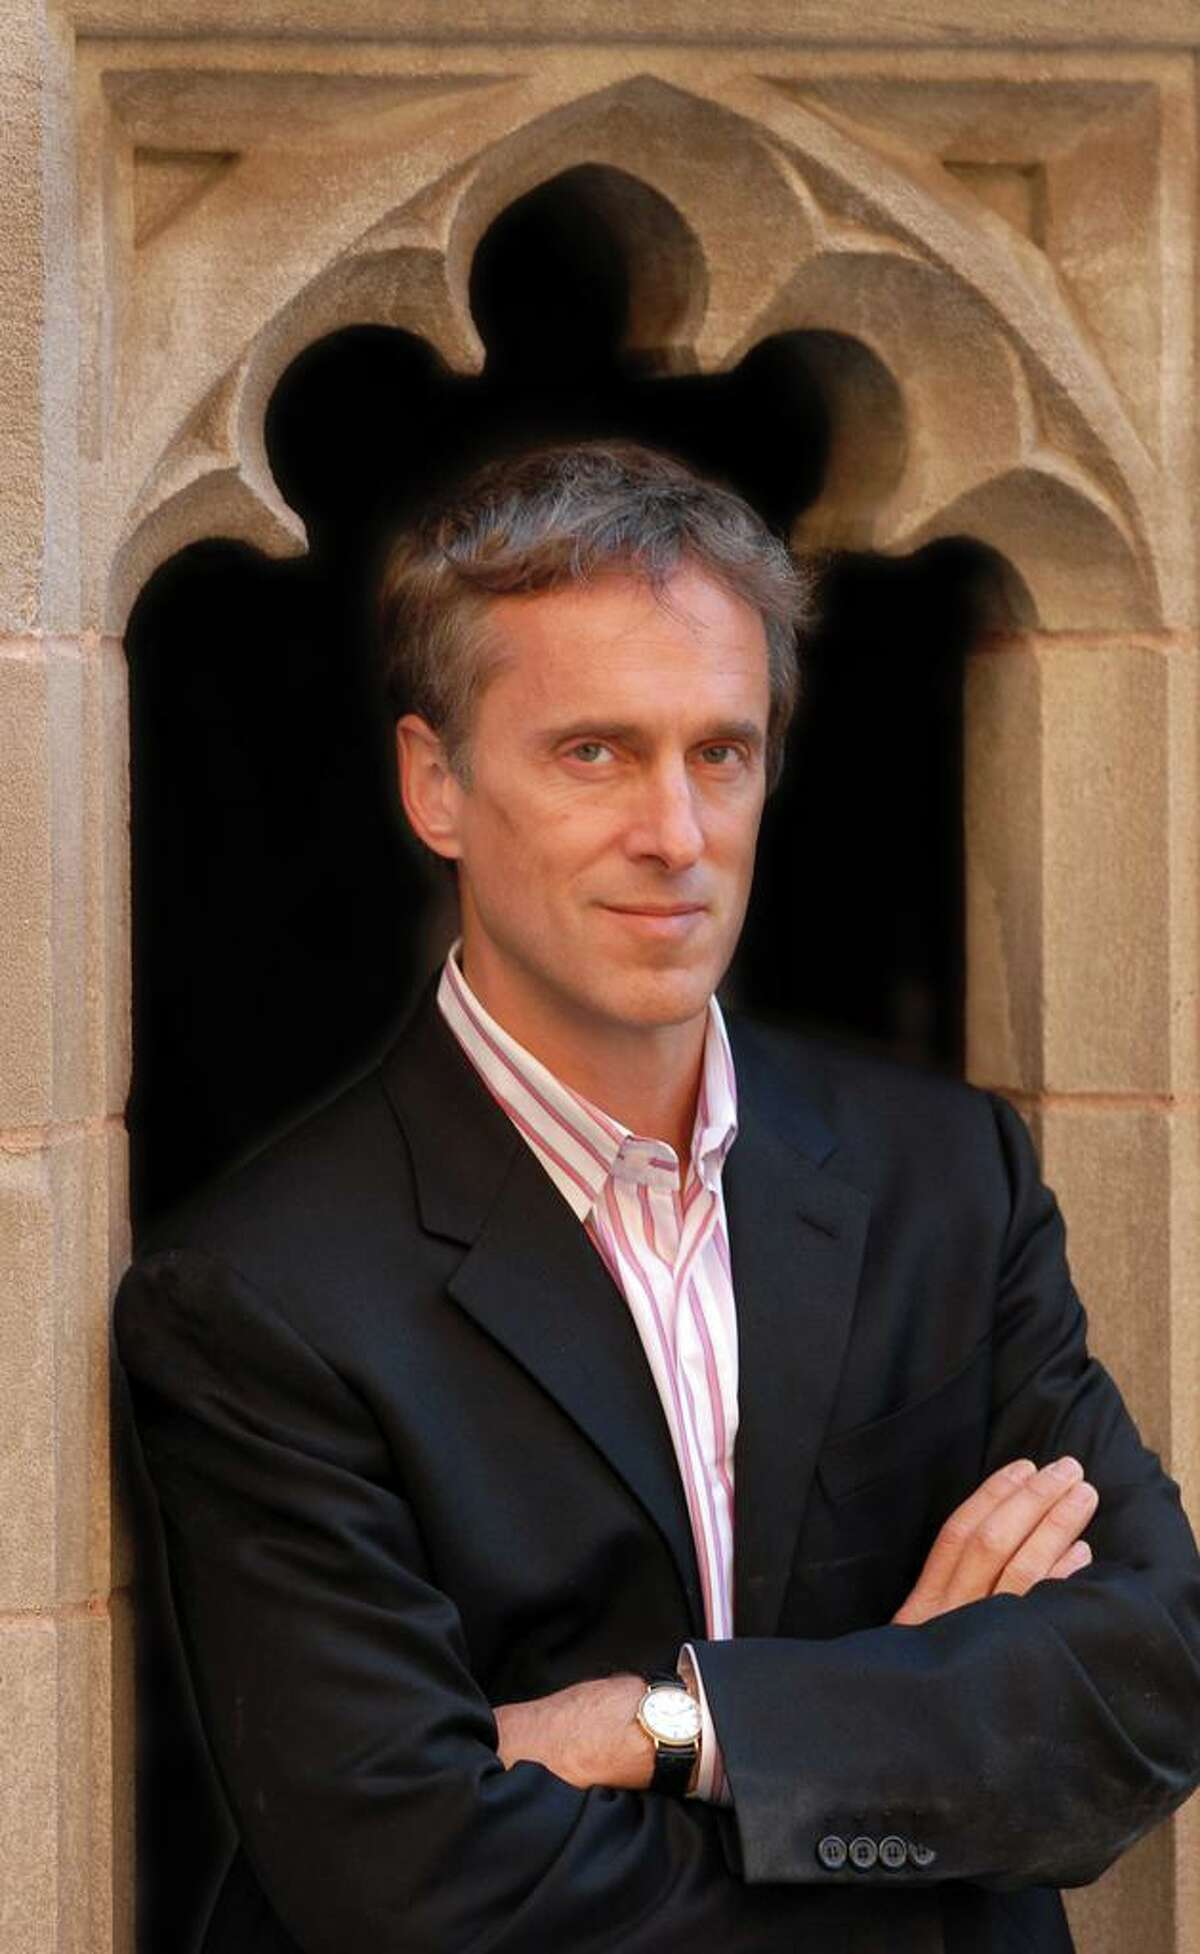 Yale law professor and author Jed Rubenfeld at the Law School in 2006